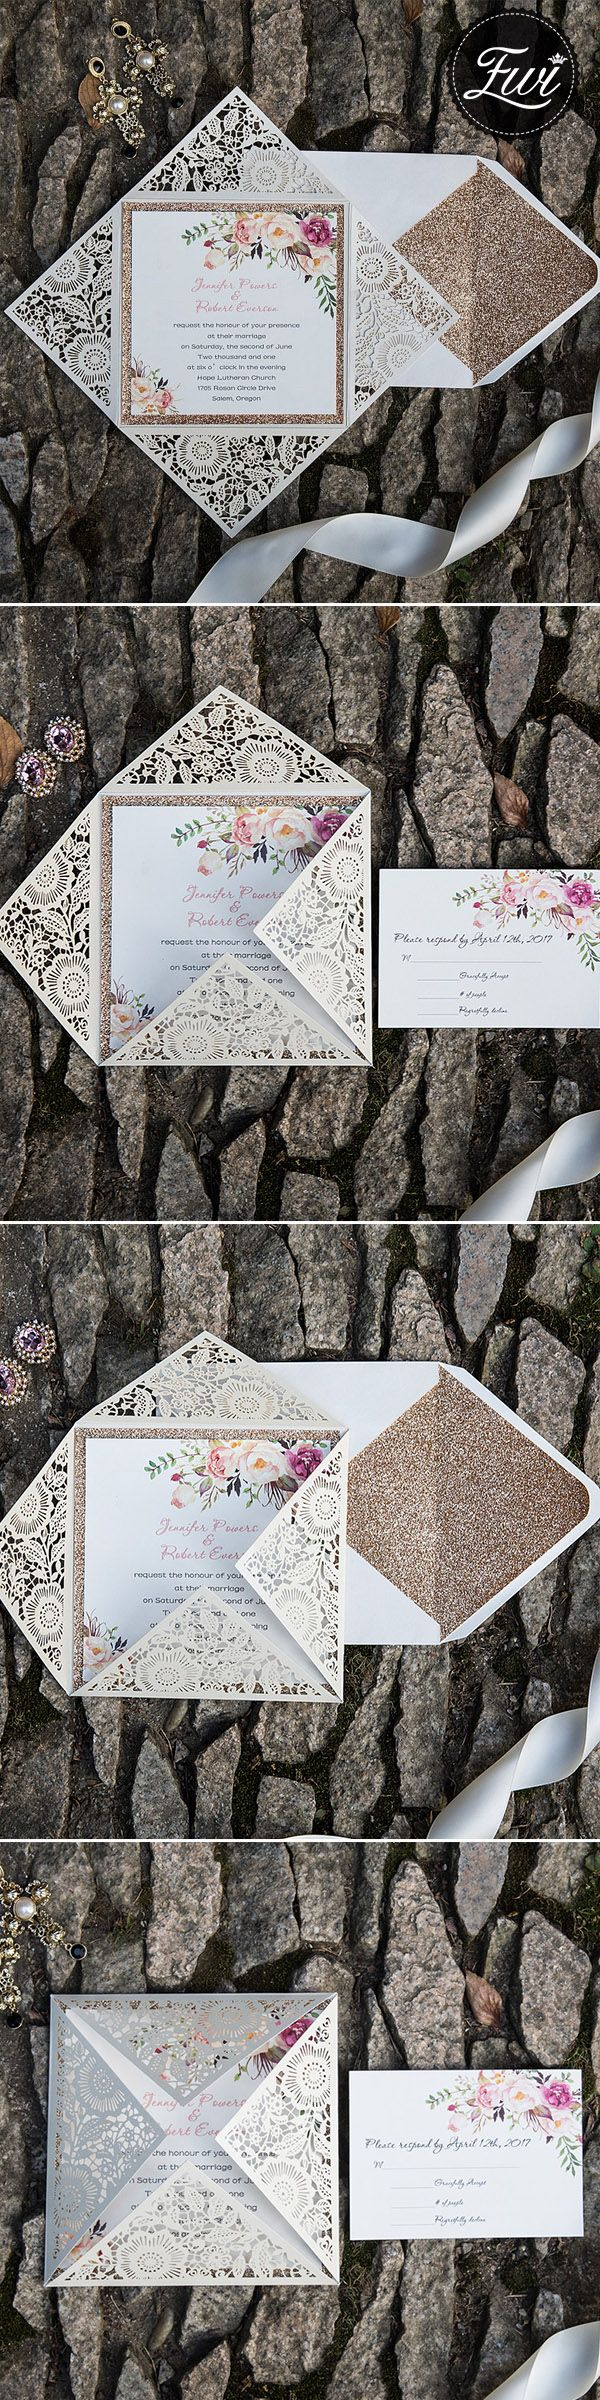 bohemian rustic spring flower glittery rose gold laser cut invitations EWWS085#rosegold#invitations#weddings#lasercur#2018trends